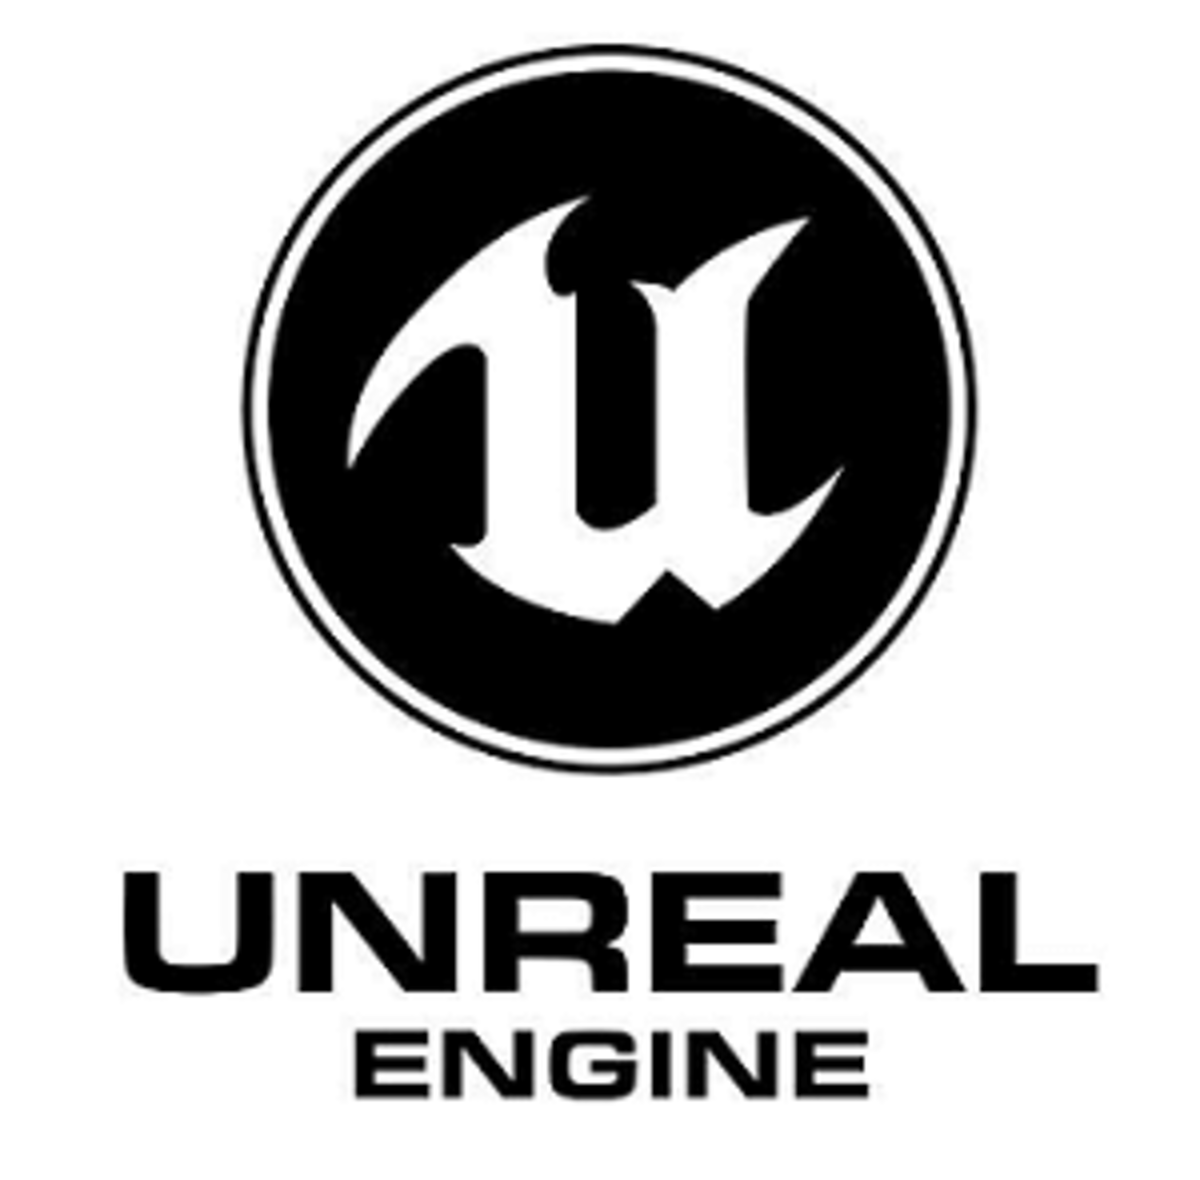 The above image is the Logo used by Unreal Engine